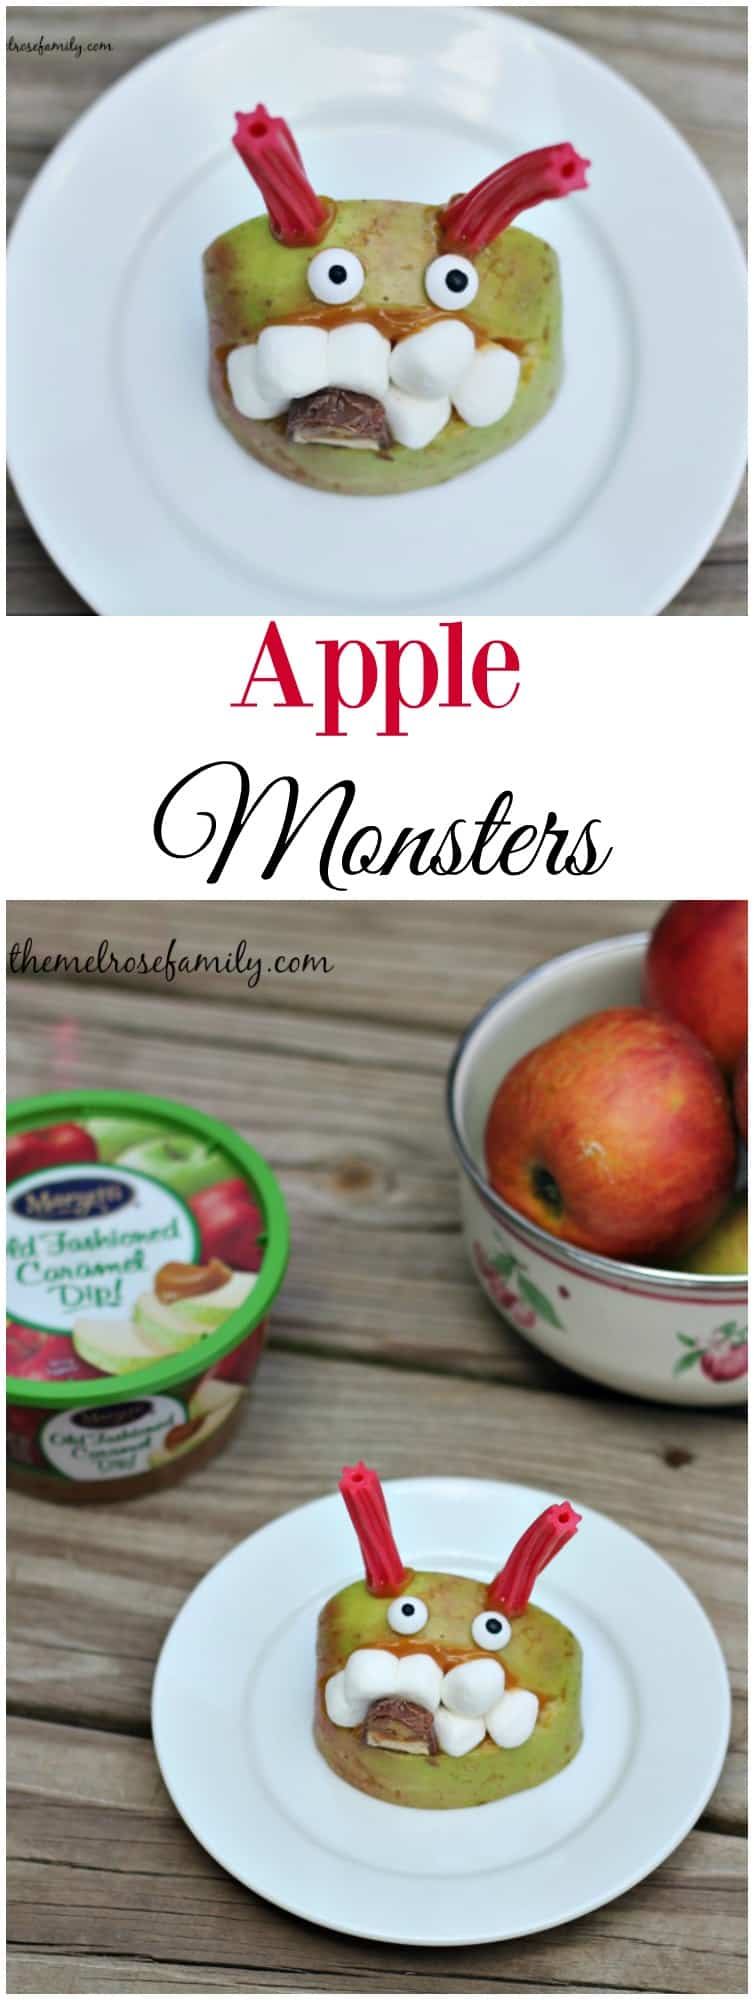 Ready to start a new Fall tradition? These Apple Monsters with Marzetti Old Fashioned Caramel are fun to make and eat.